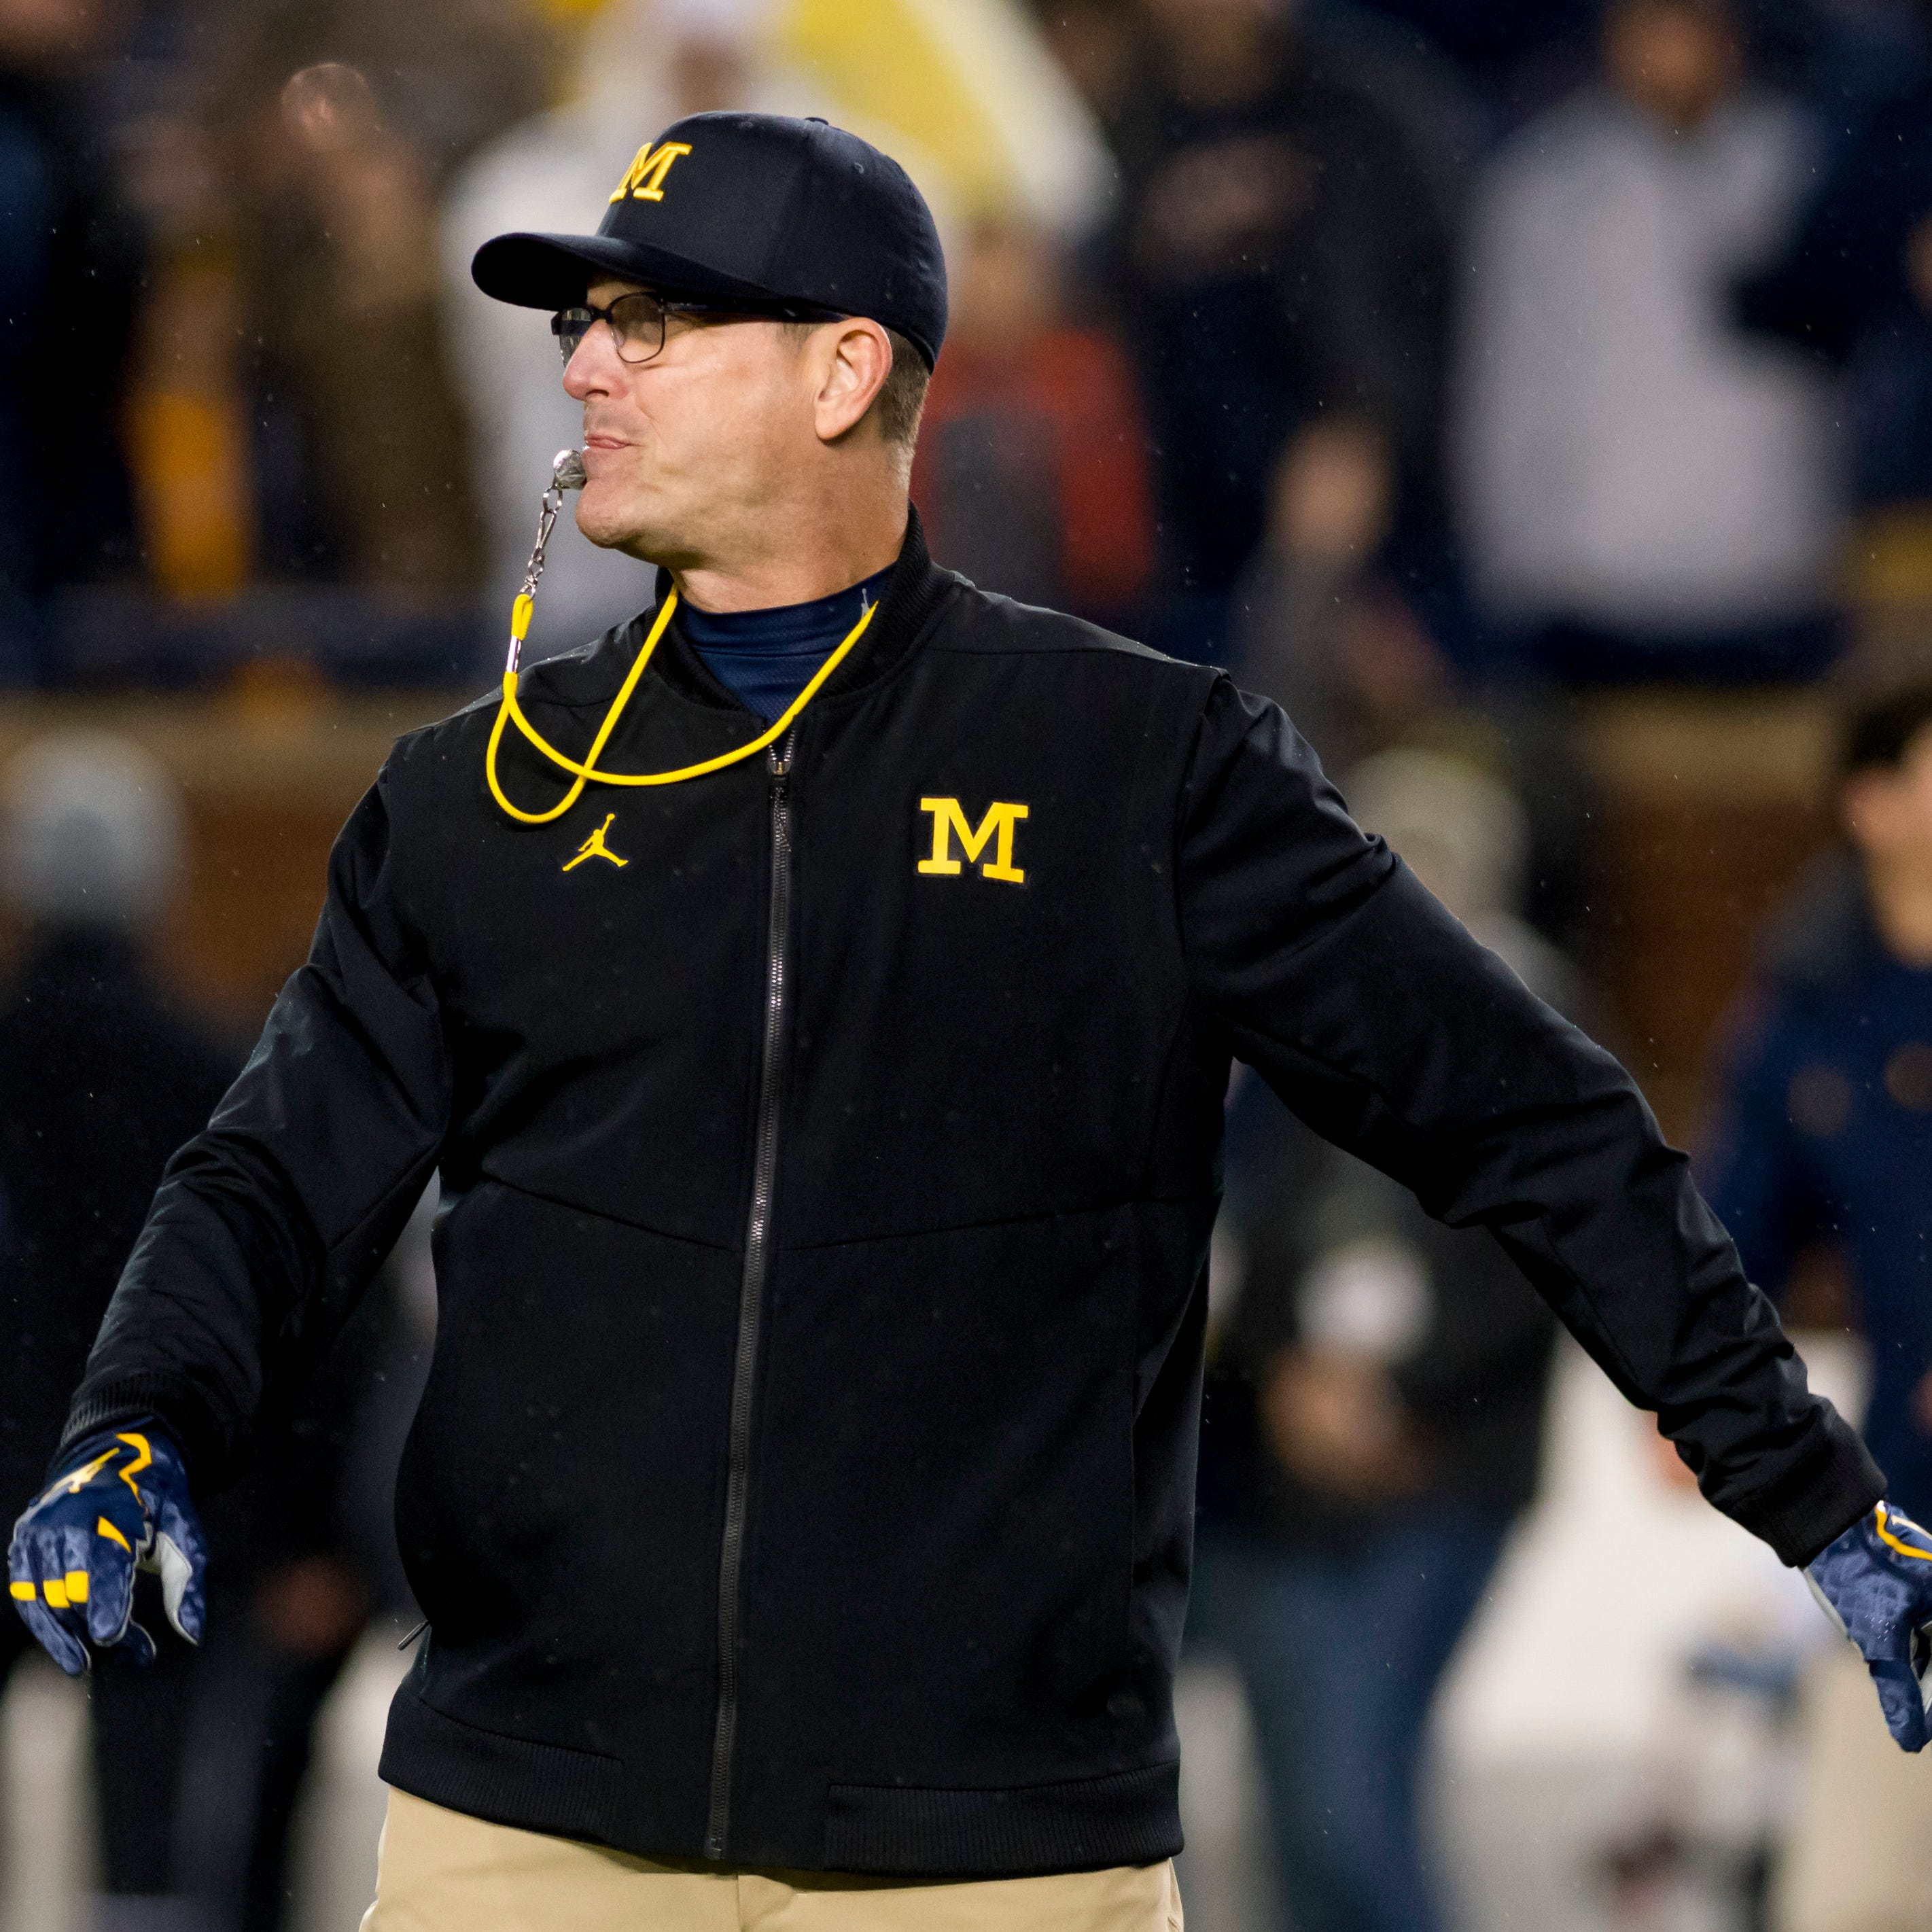 Michigan keeps its focus on elusive Big Ten title: 'That's what we're here for'